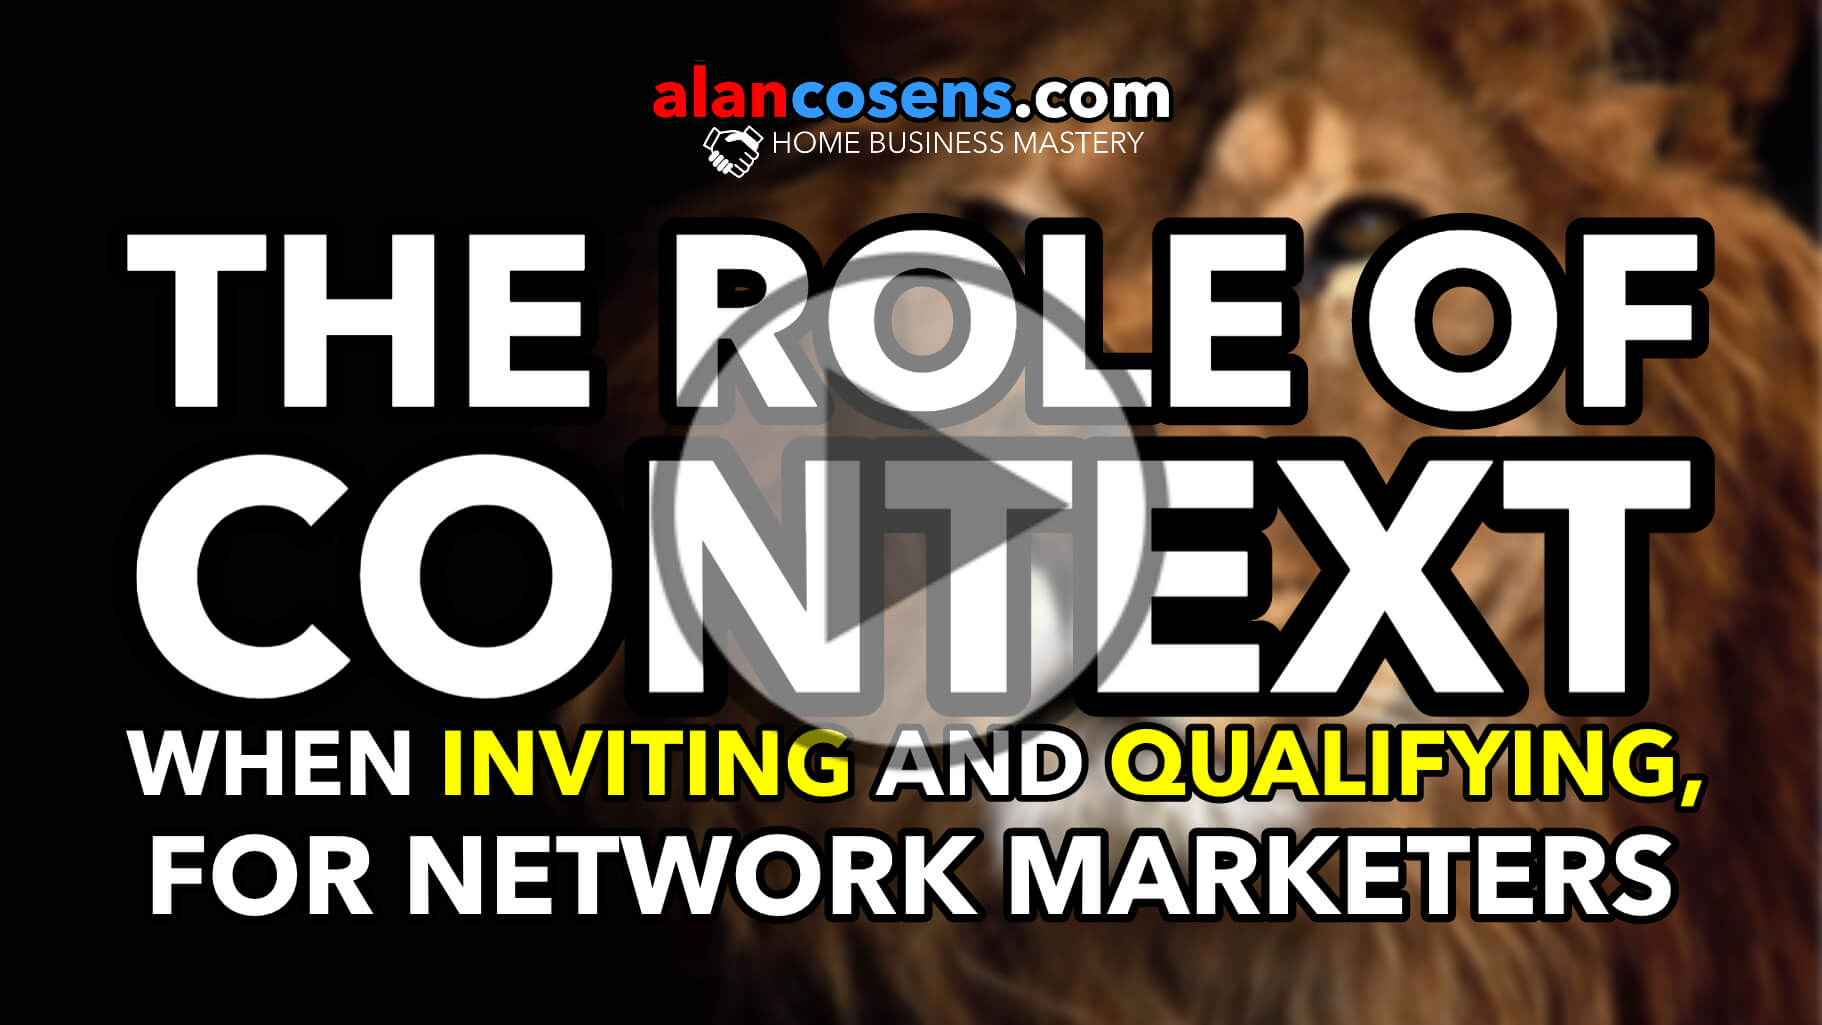 The Role of CONTEXT When Inviting and Qualifying